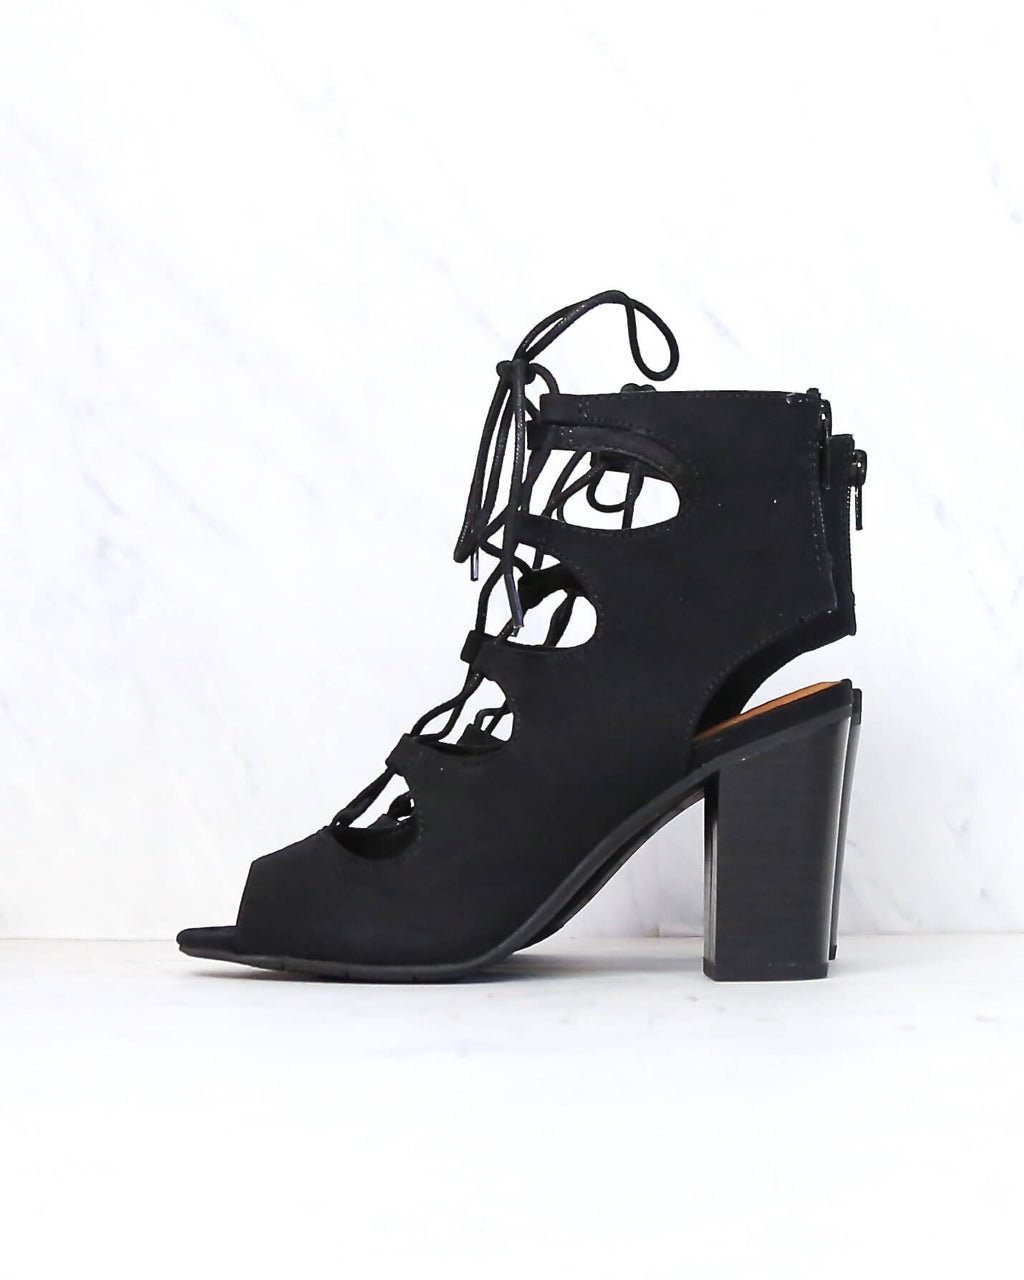 BC Footwear - Vivacious Lace Up Sandals in Black